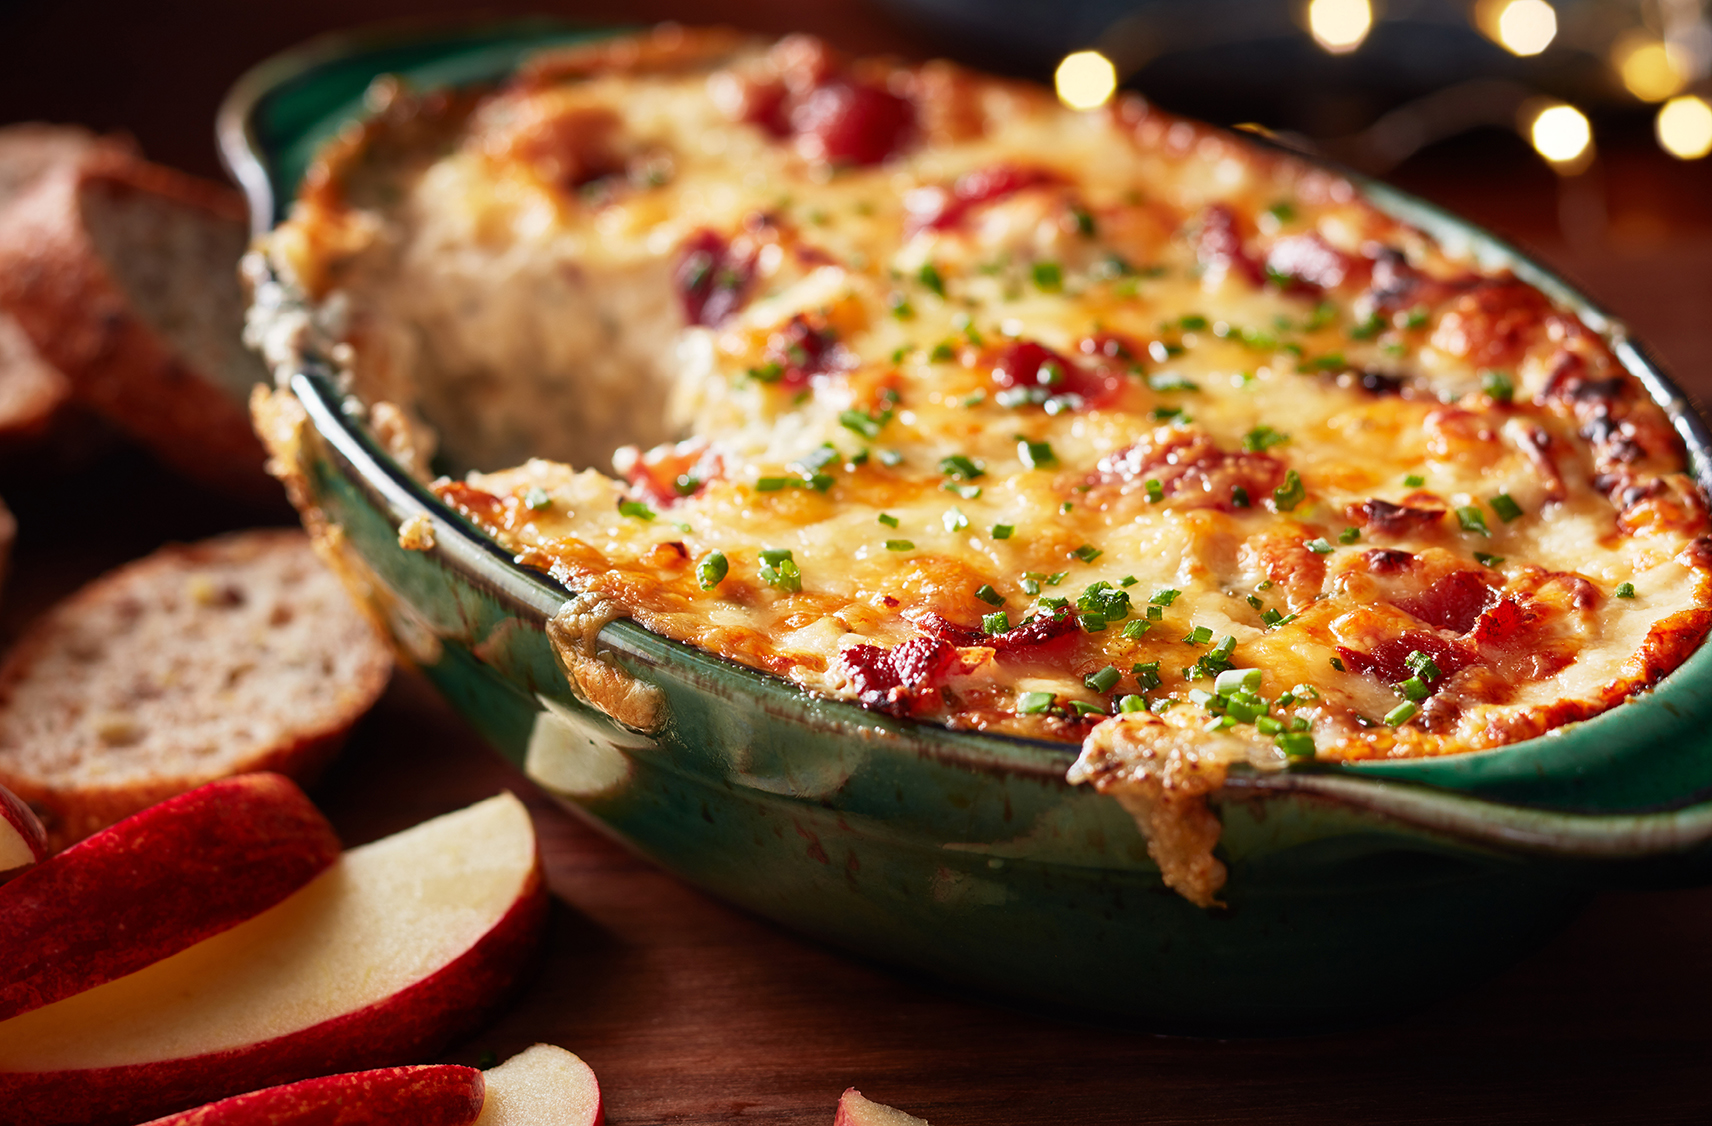 Apple and bread slices wait to be dunked into a cheesy baked dip with bacon